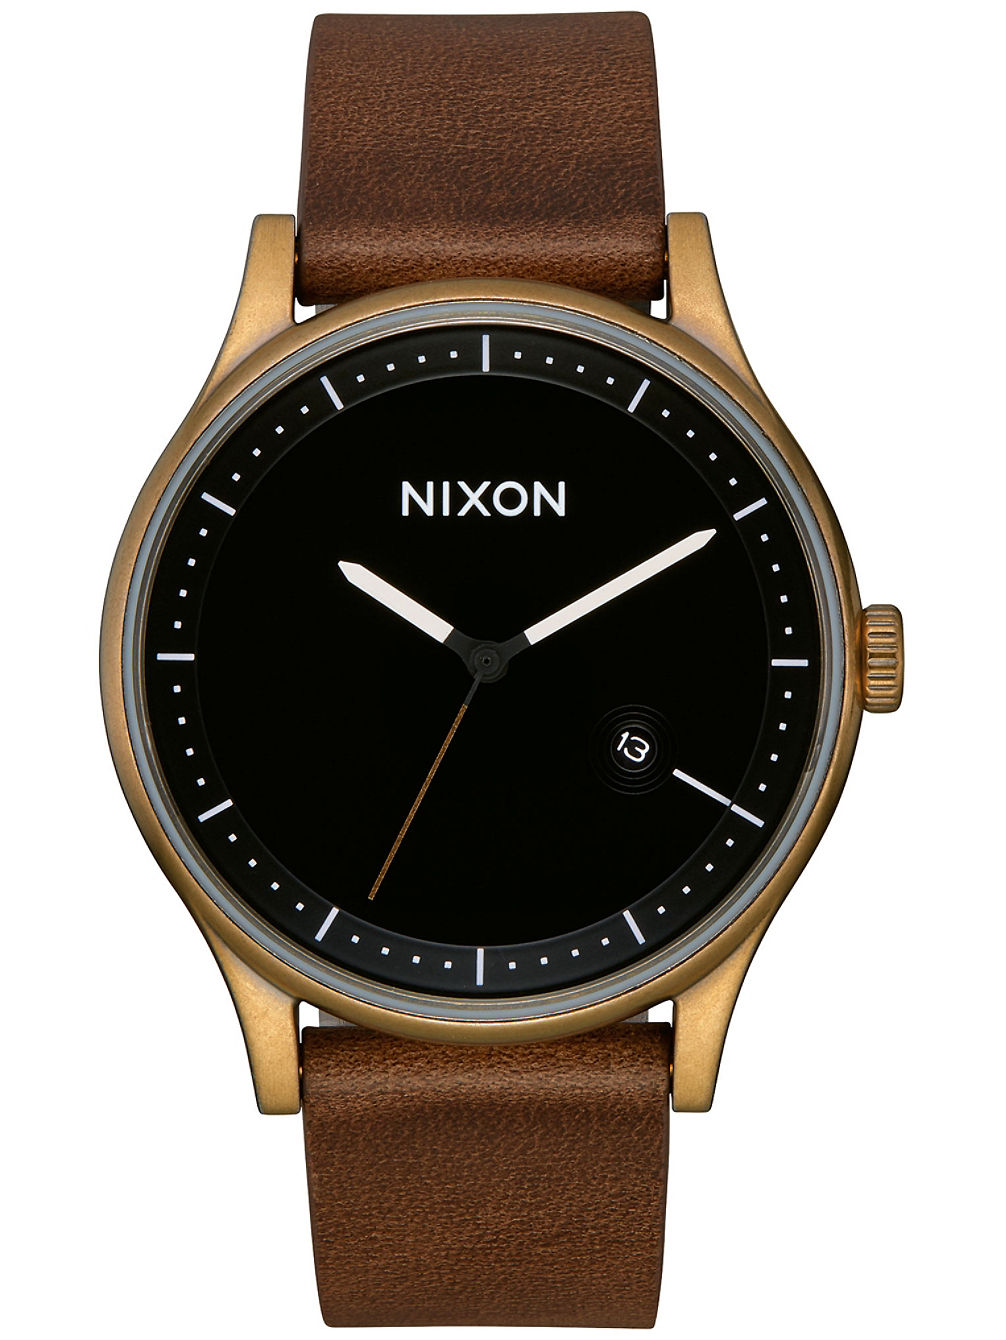 The Station Leather Reloj